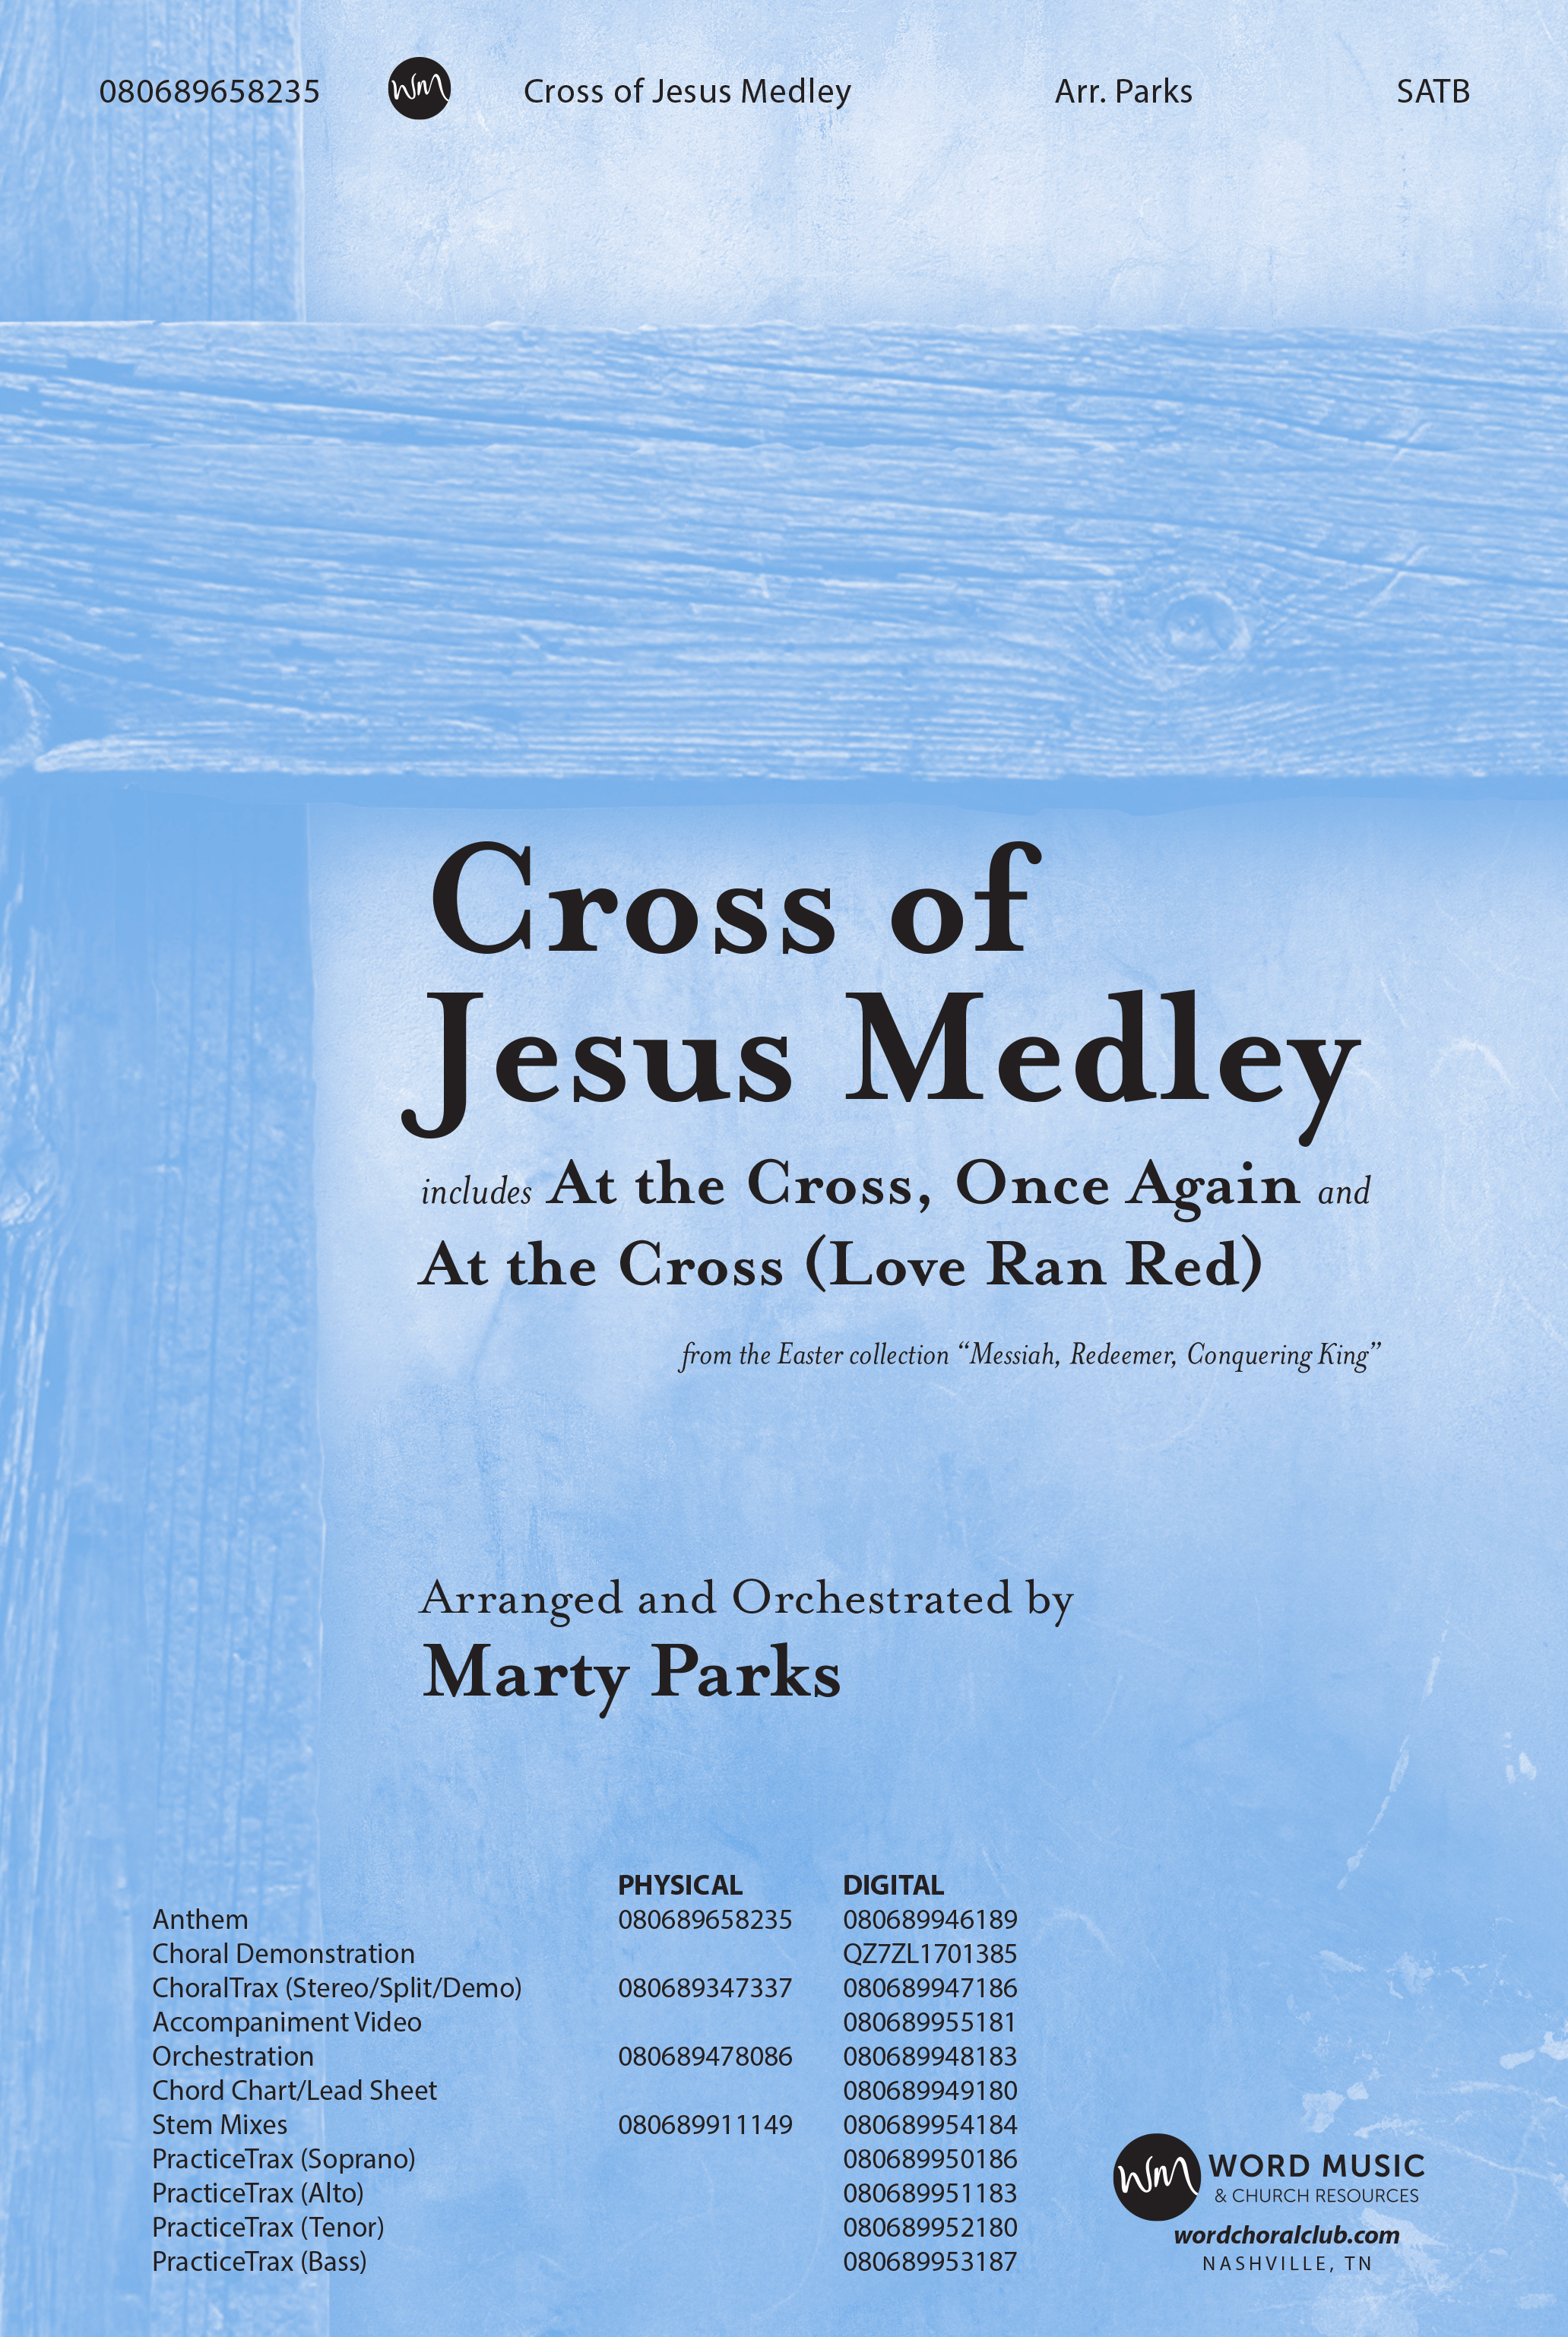 Cross of Jesus Medley